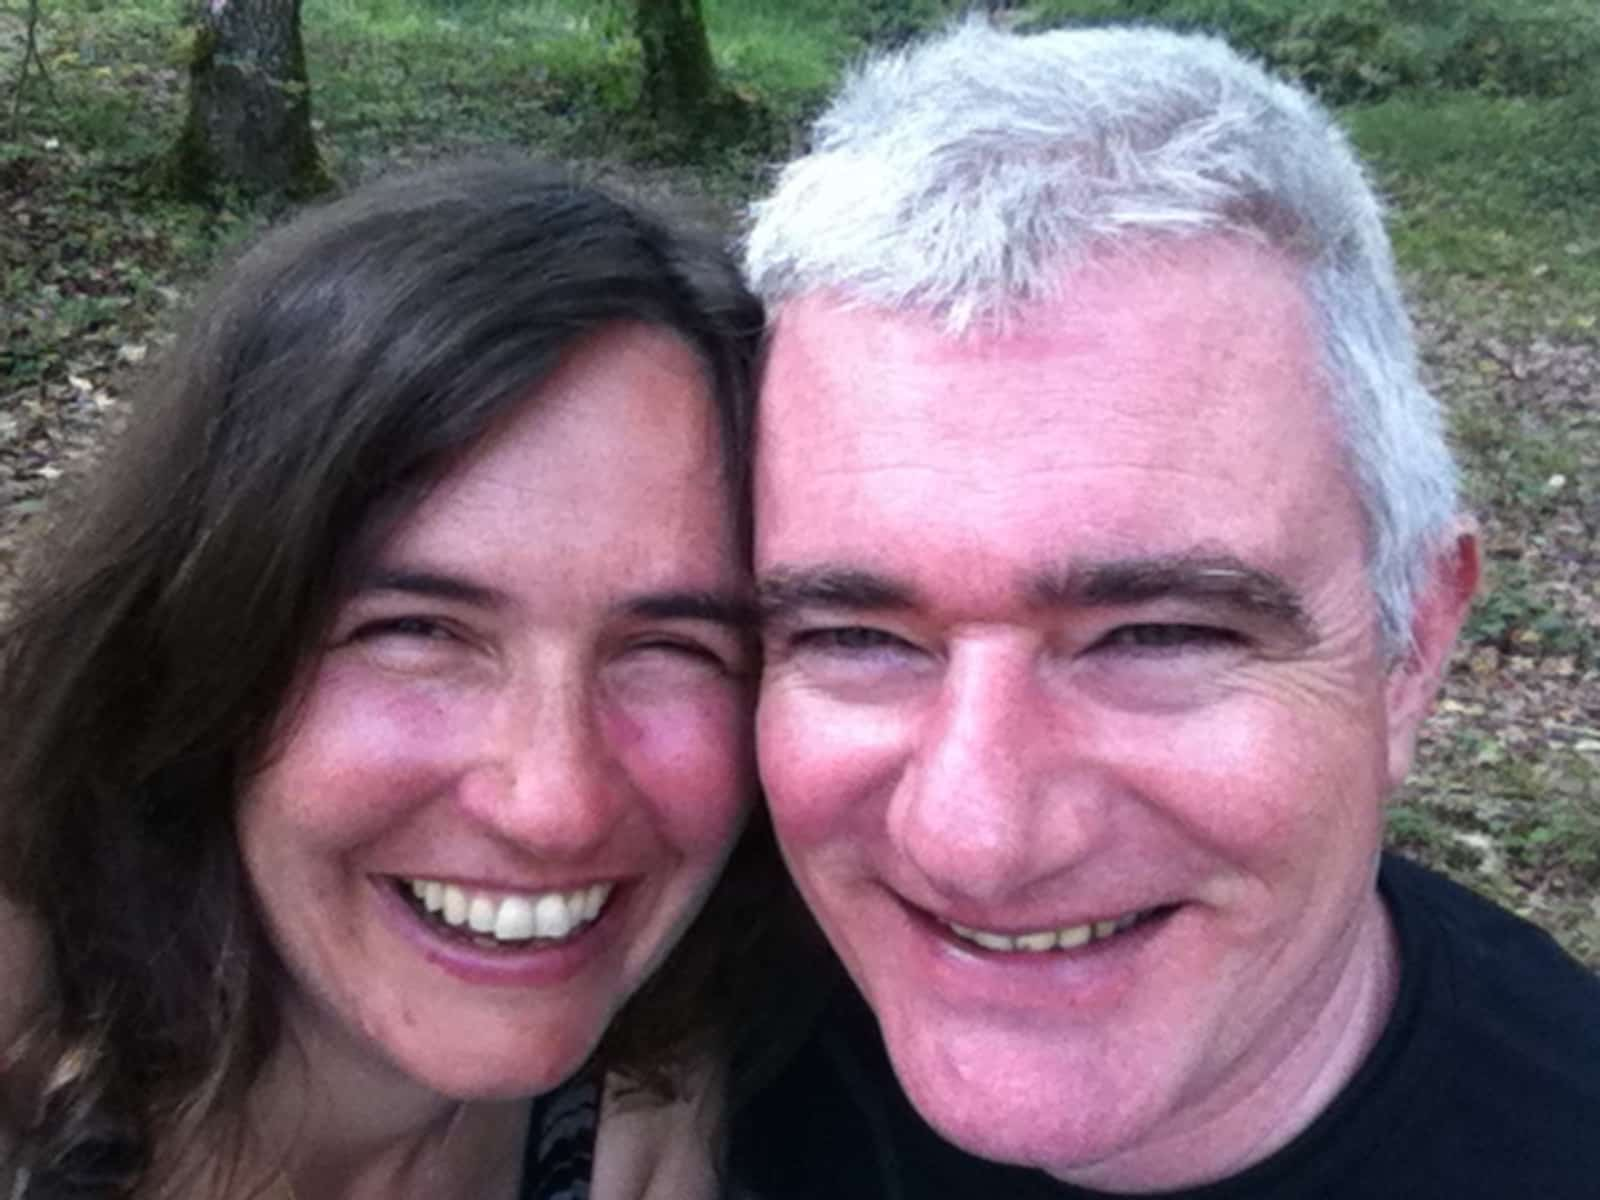 Kate & Brian from Glenageary, Ireland